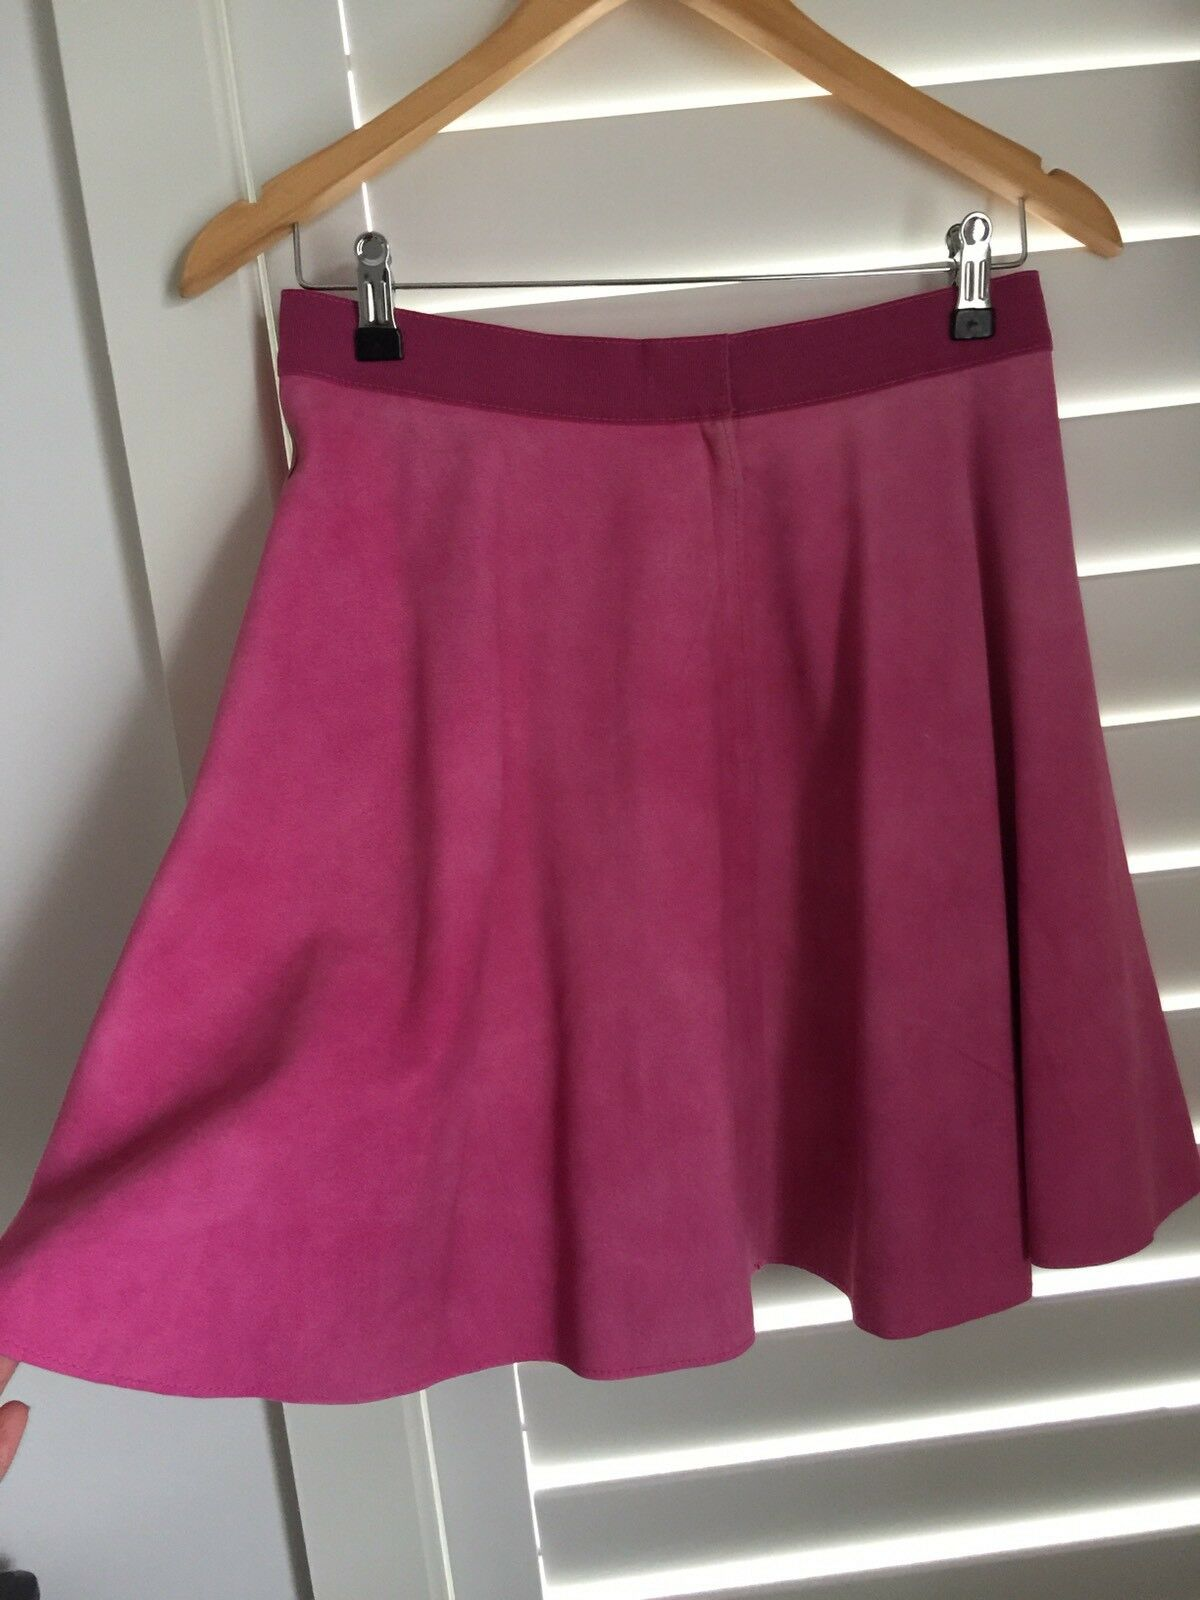 3.1 Phillip Lim Pink Suede Leather Skirt